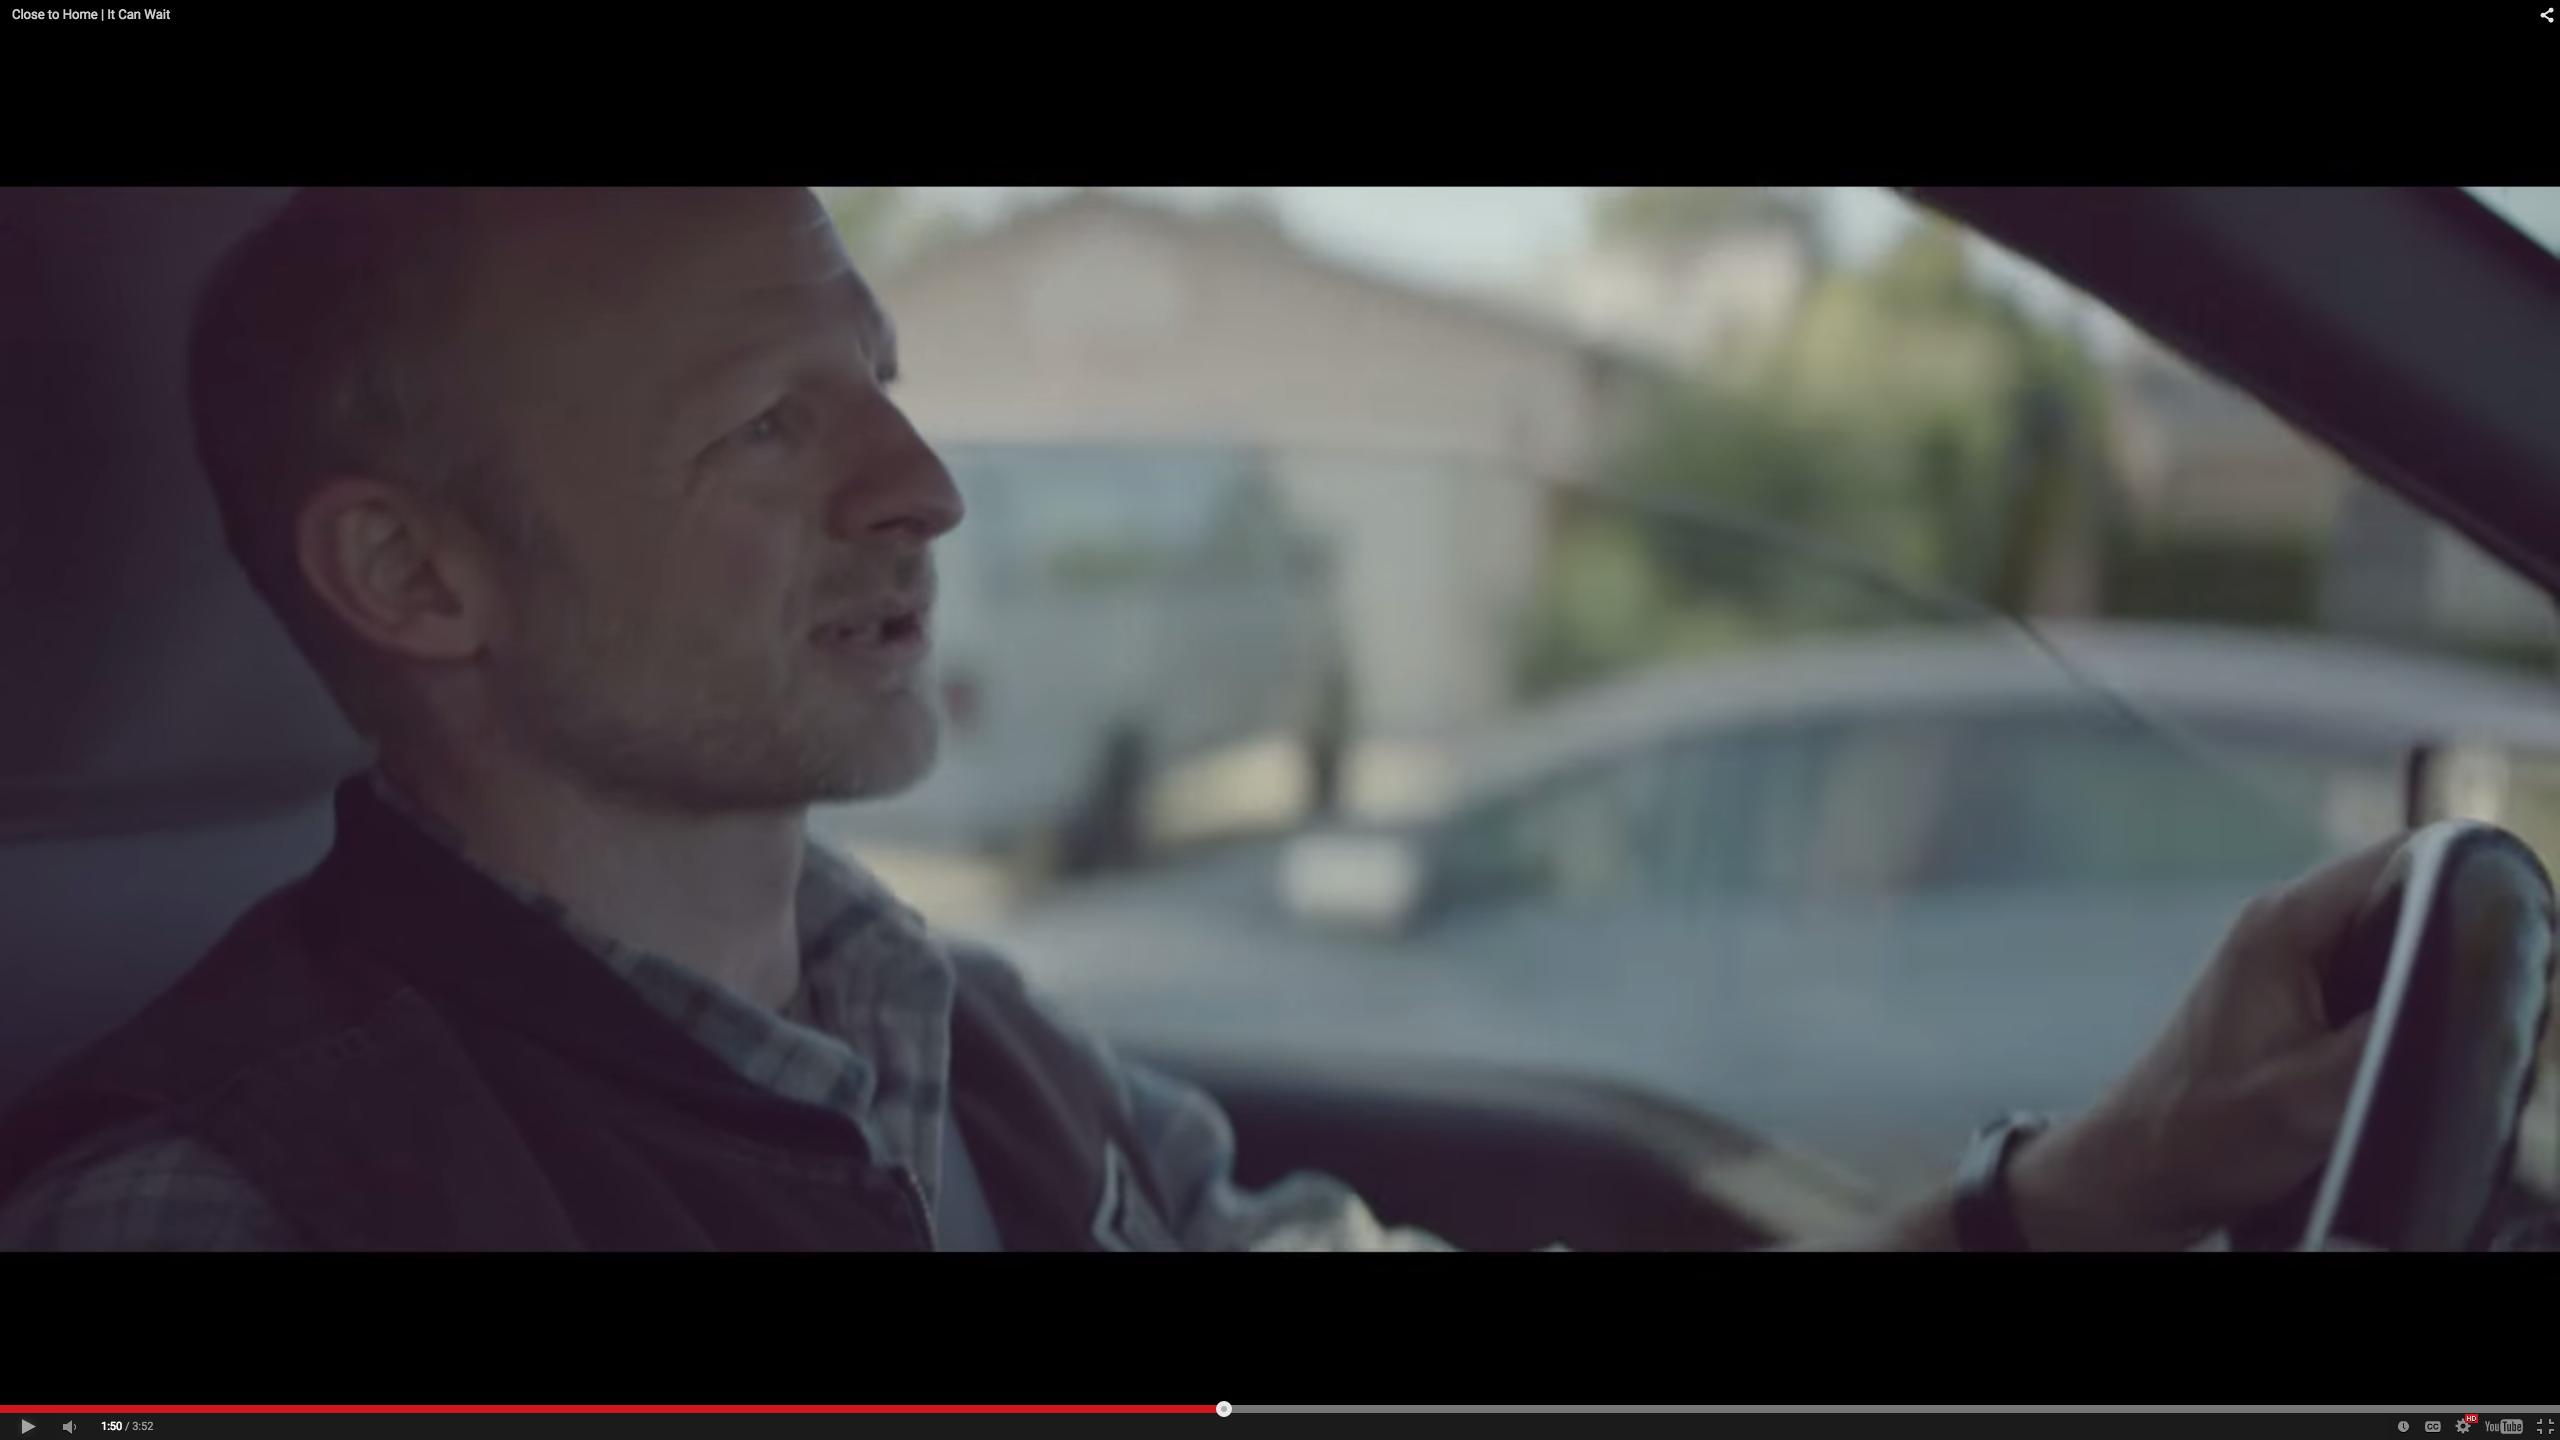 Video: 7 Tips for Curbing Distracted Driving